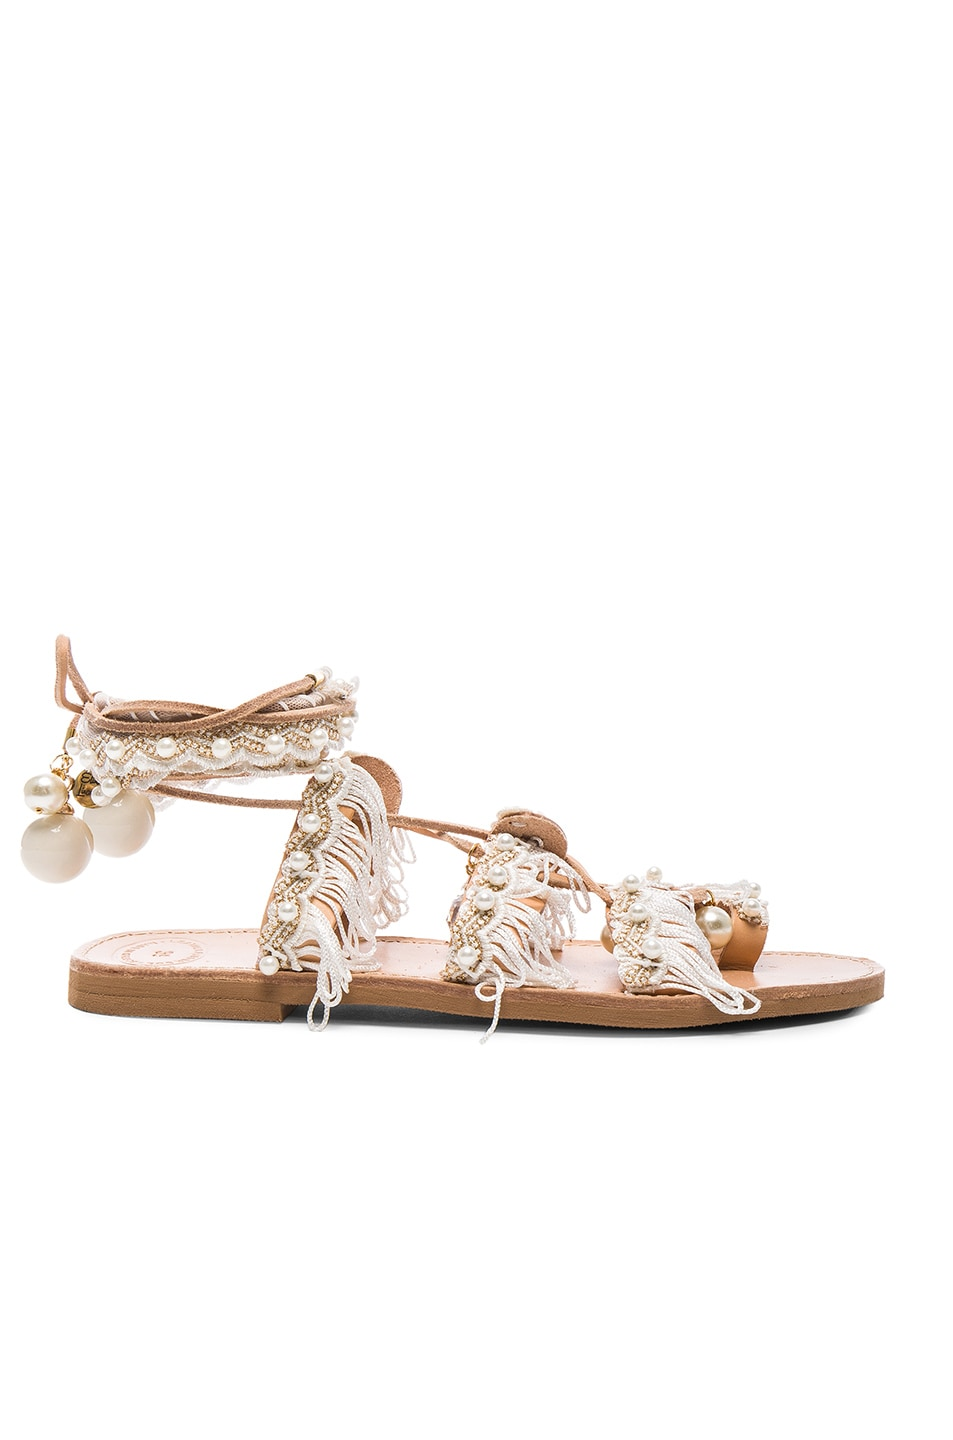 Image 2 of Elina Linardaki Leather Ever After Sandals in White